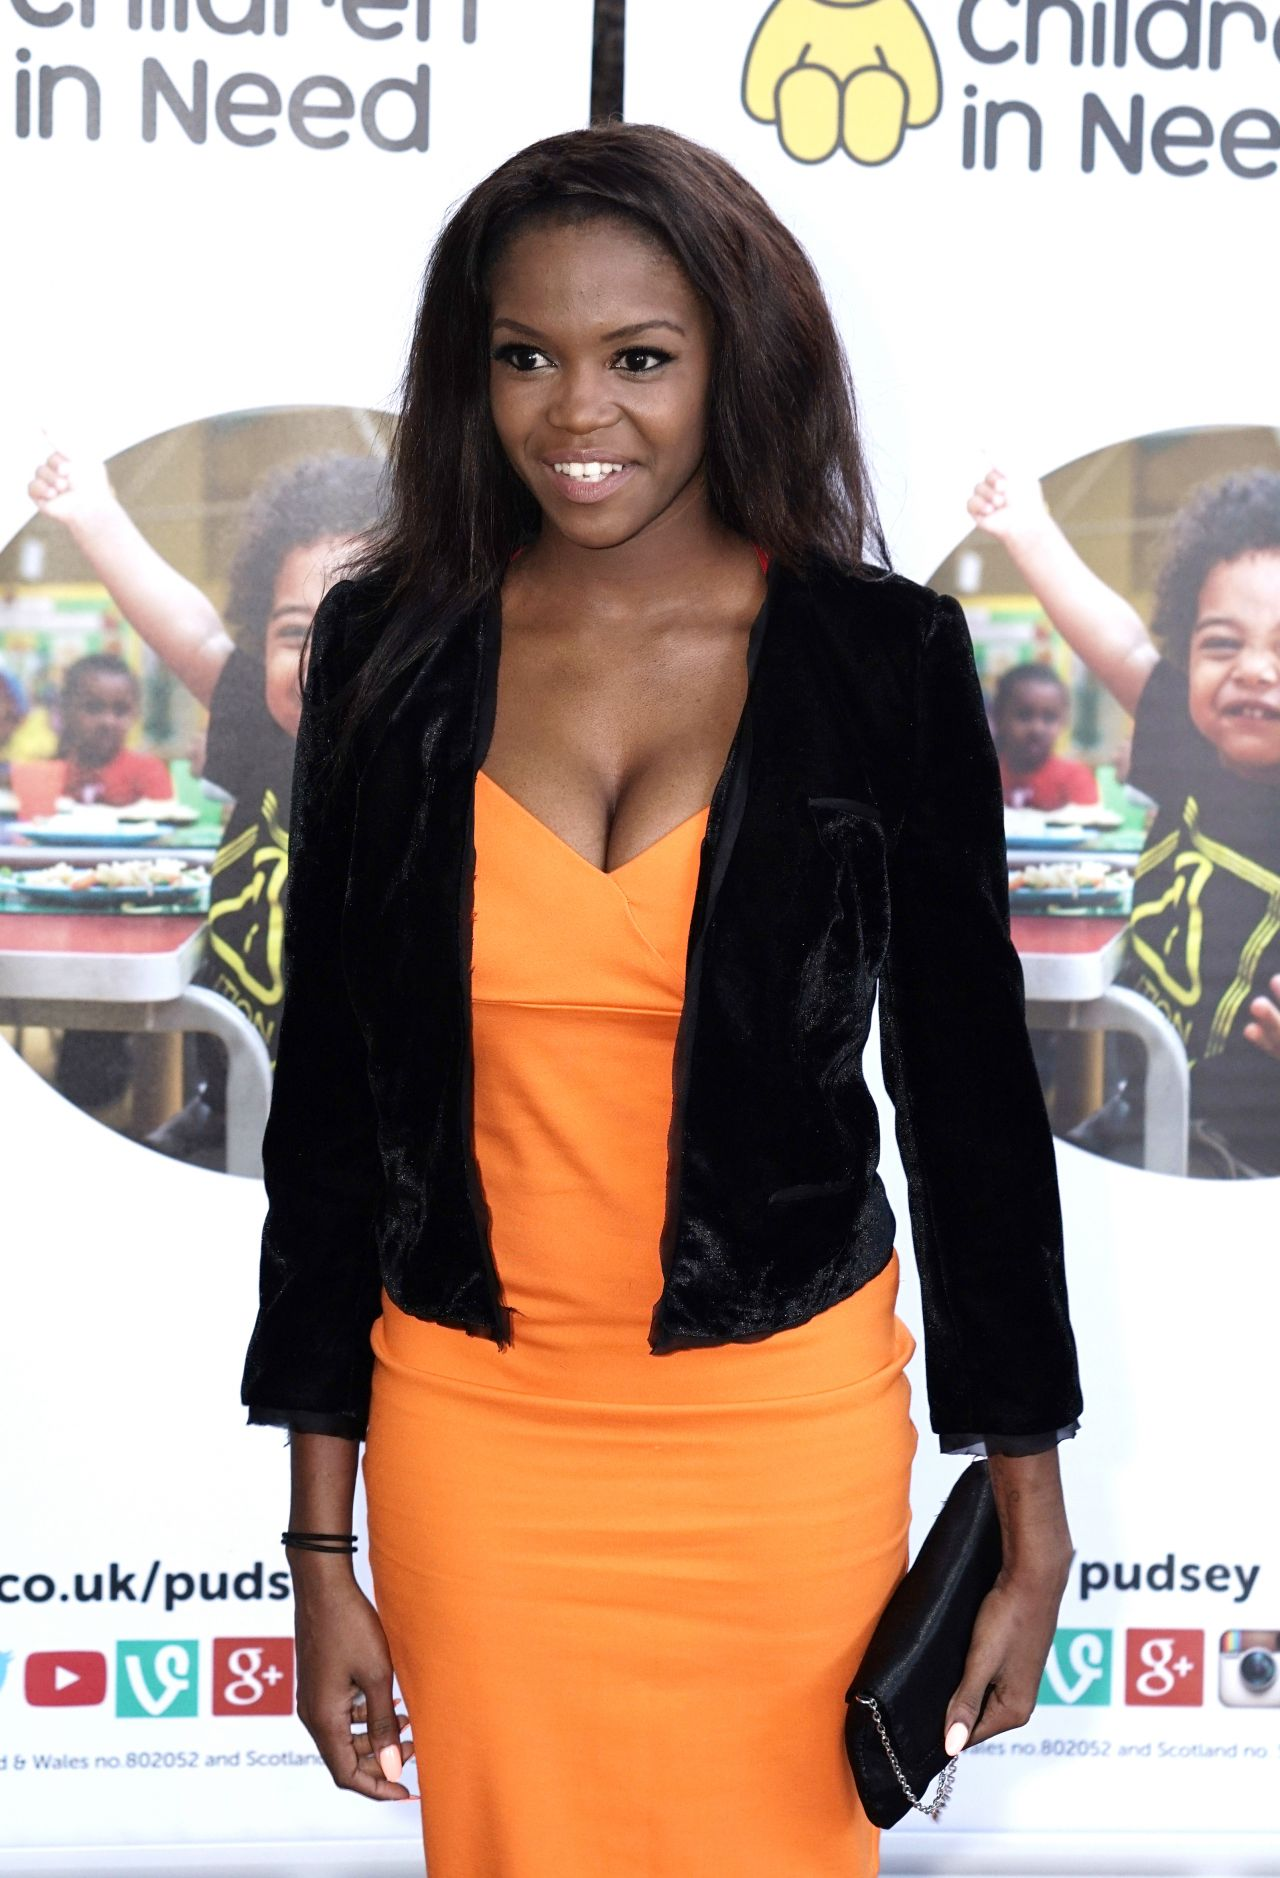 Otlile Mabuse - Terry Wogans Gala Lunch For Children In